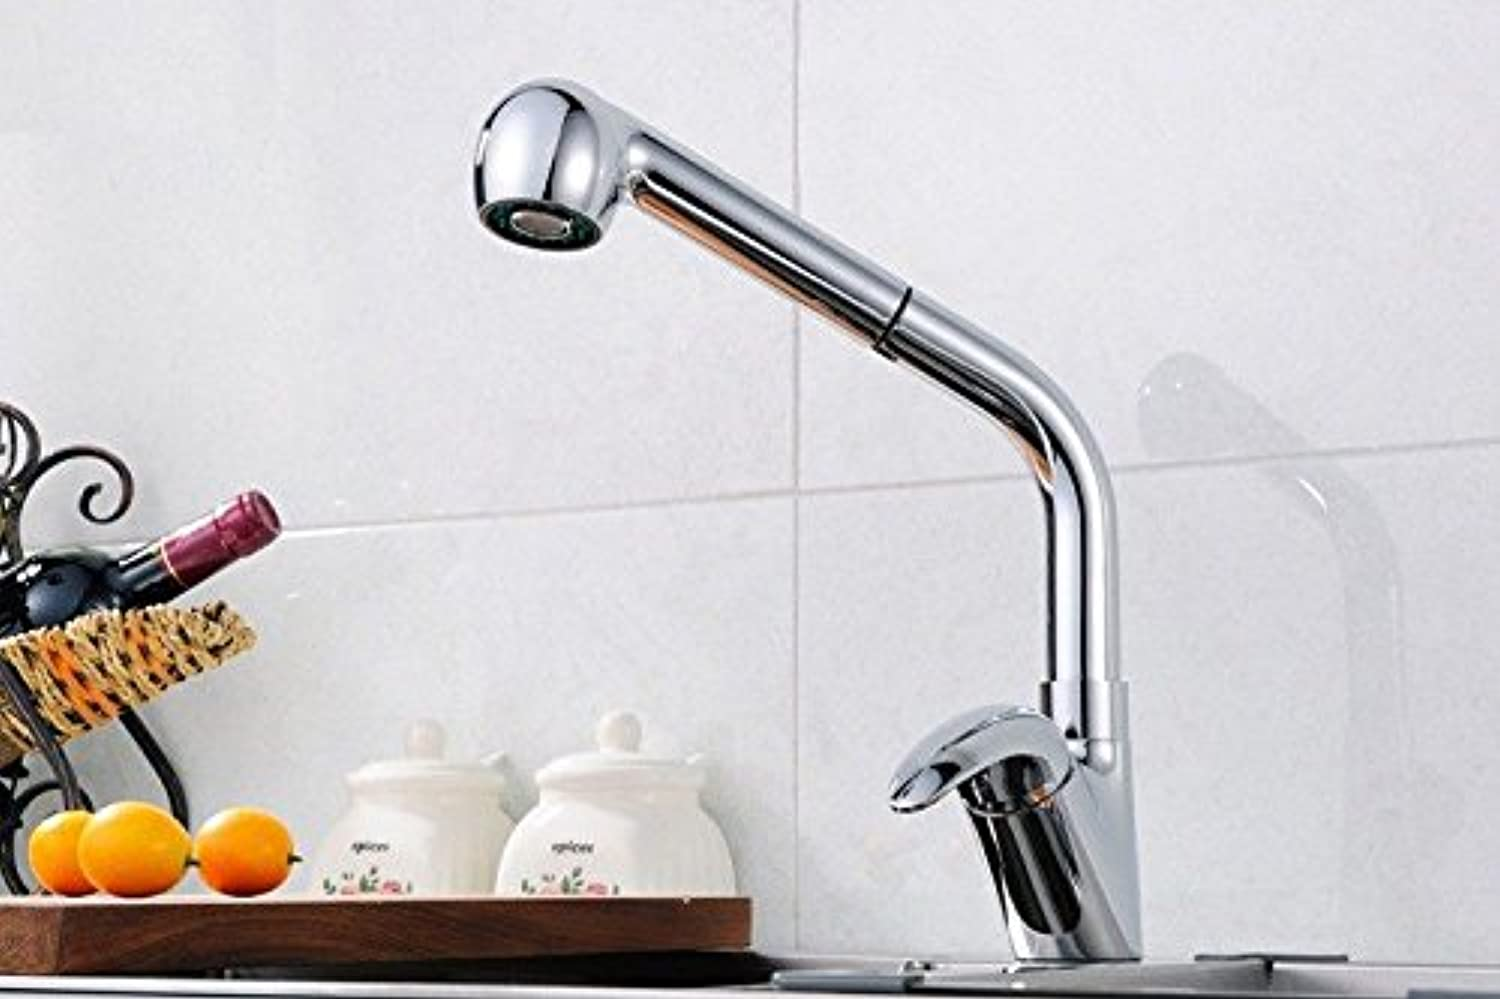 GQLB Kitchen faucet sink mixer taps kitchen sink tap pull-out spout head chrome cold and hot handle mixer taps